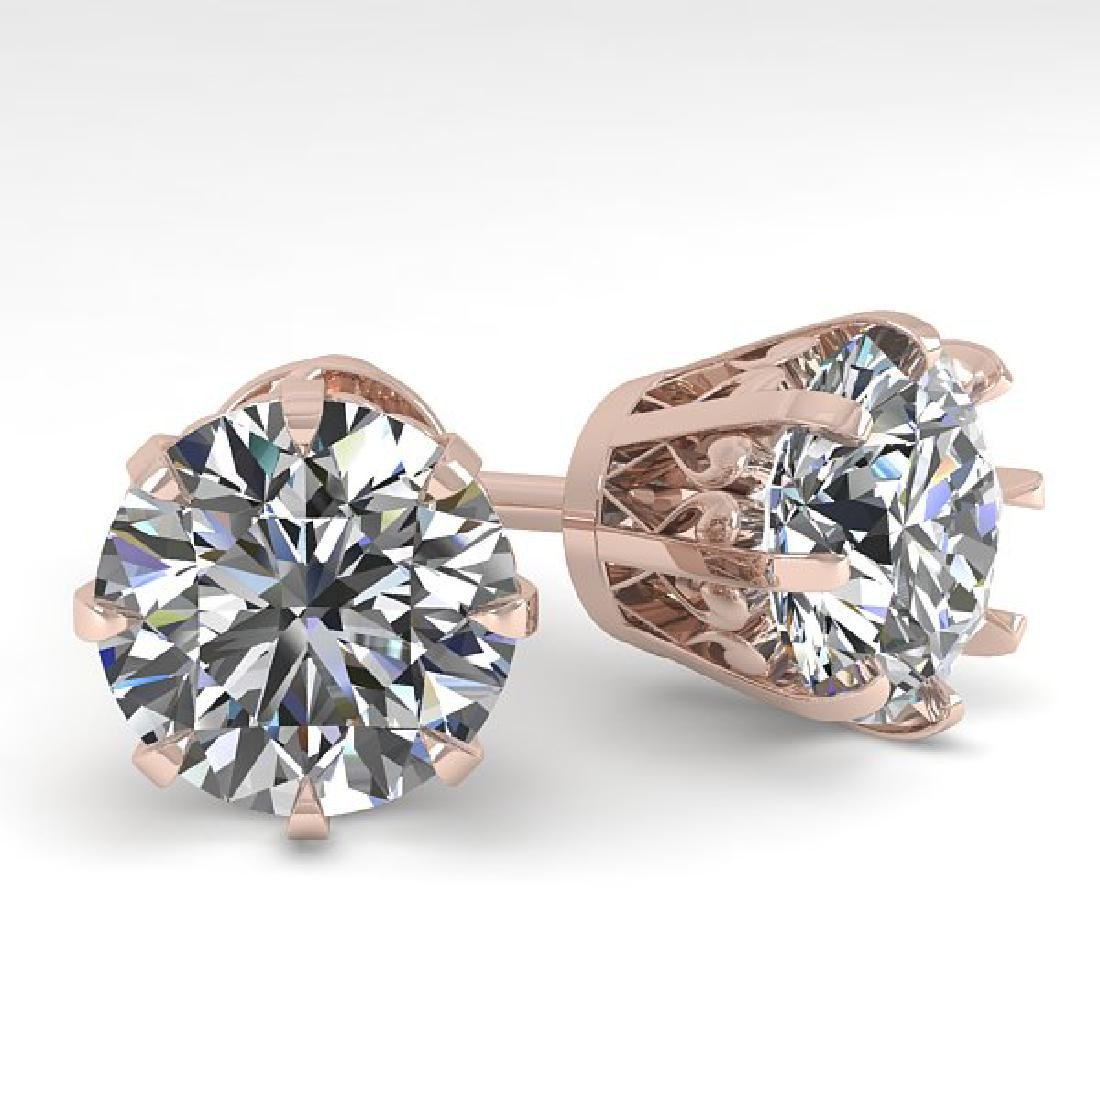 4 CTW VS/SI Diamond Stud Solitaire Earrings 18K Rose